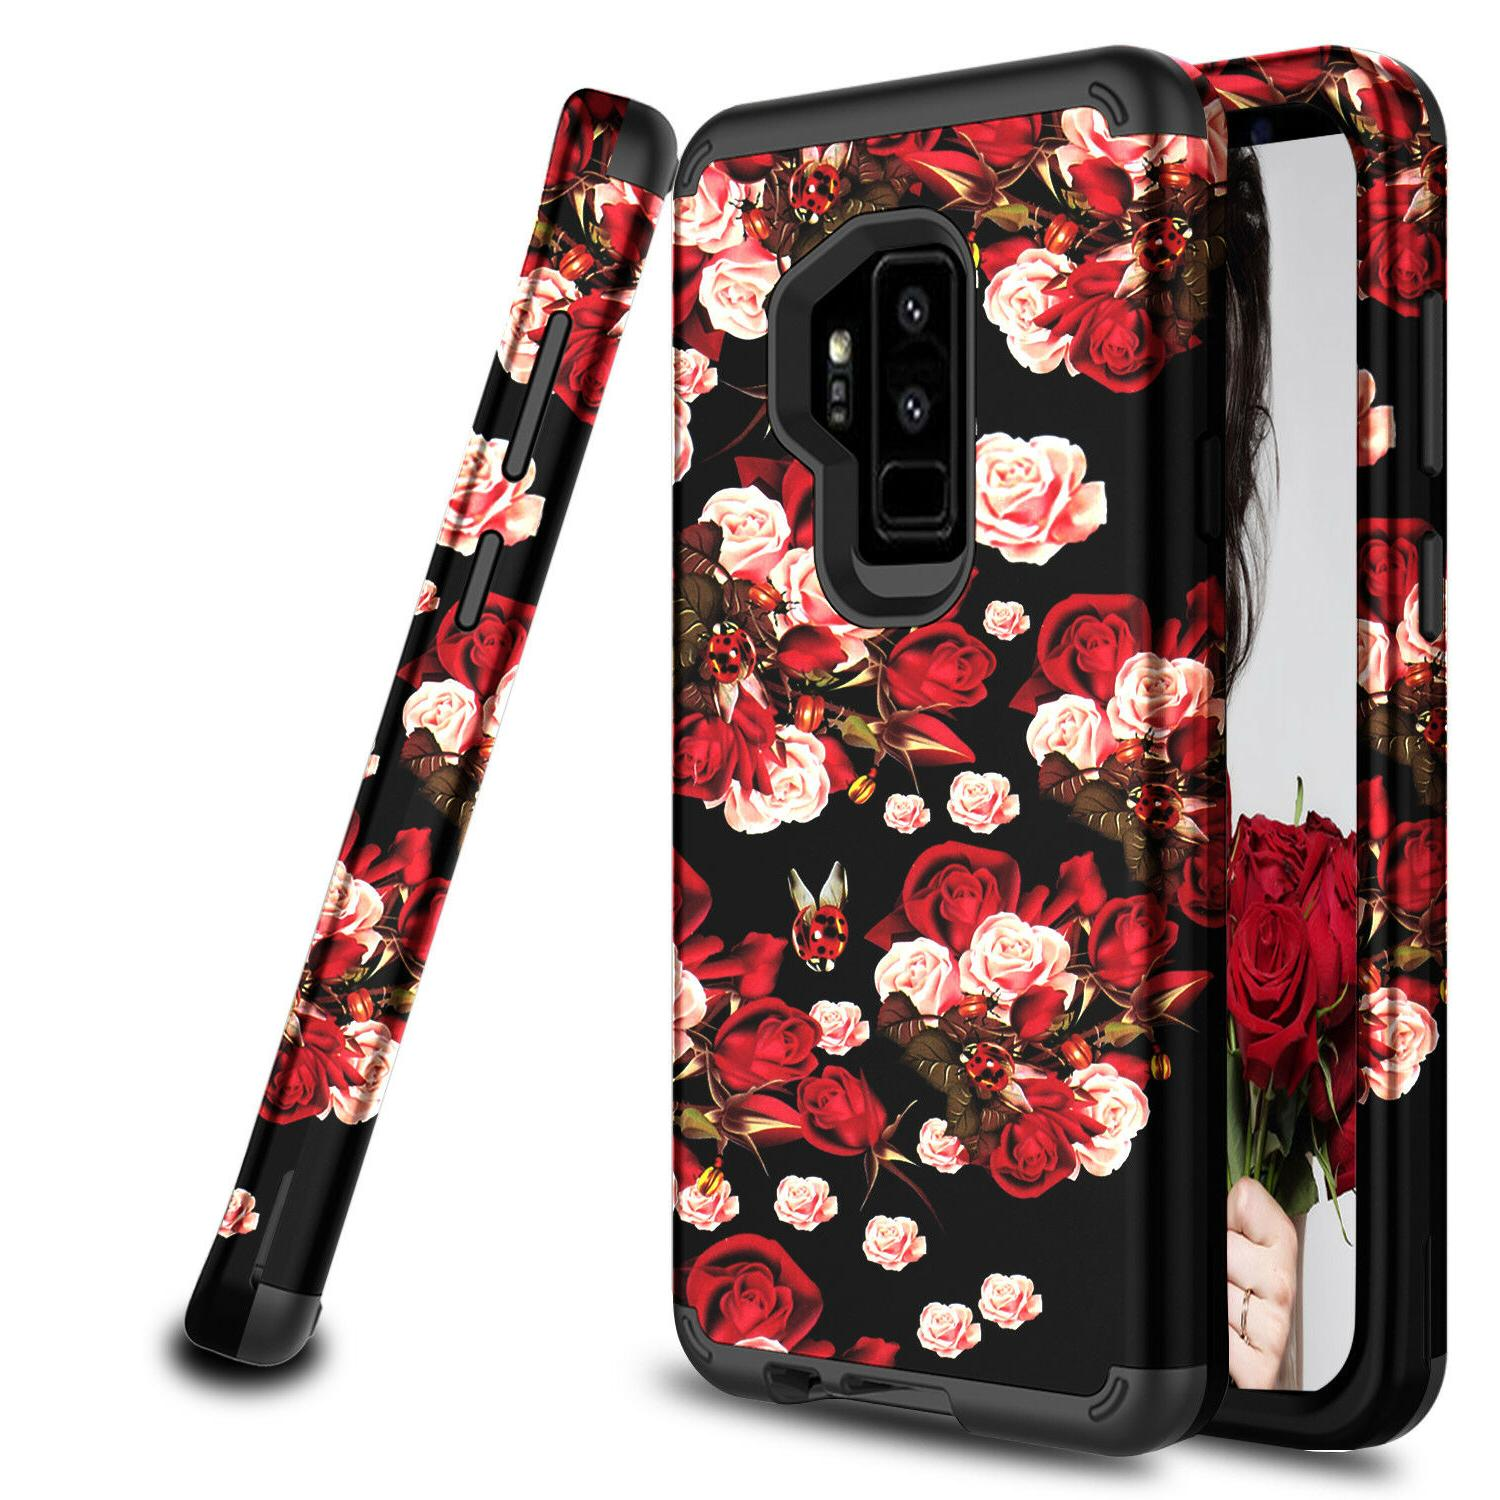 For Plus/S8 Shockproof Hard Armor Phone